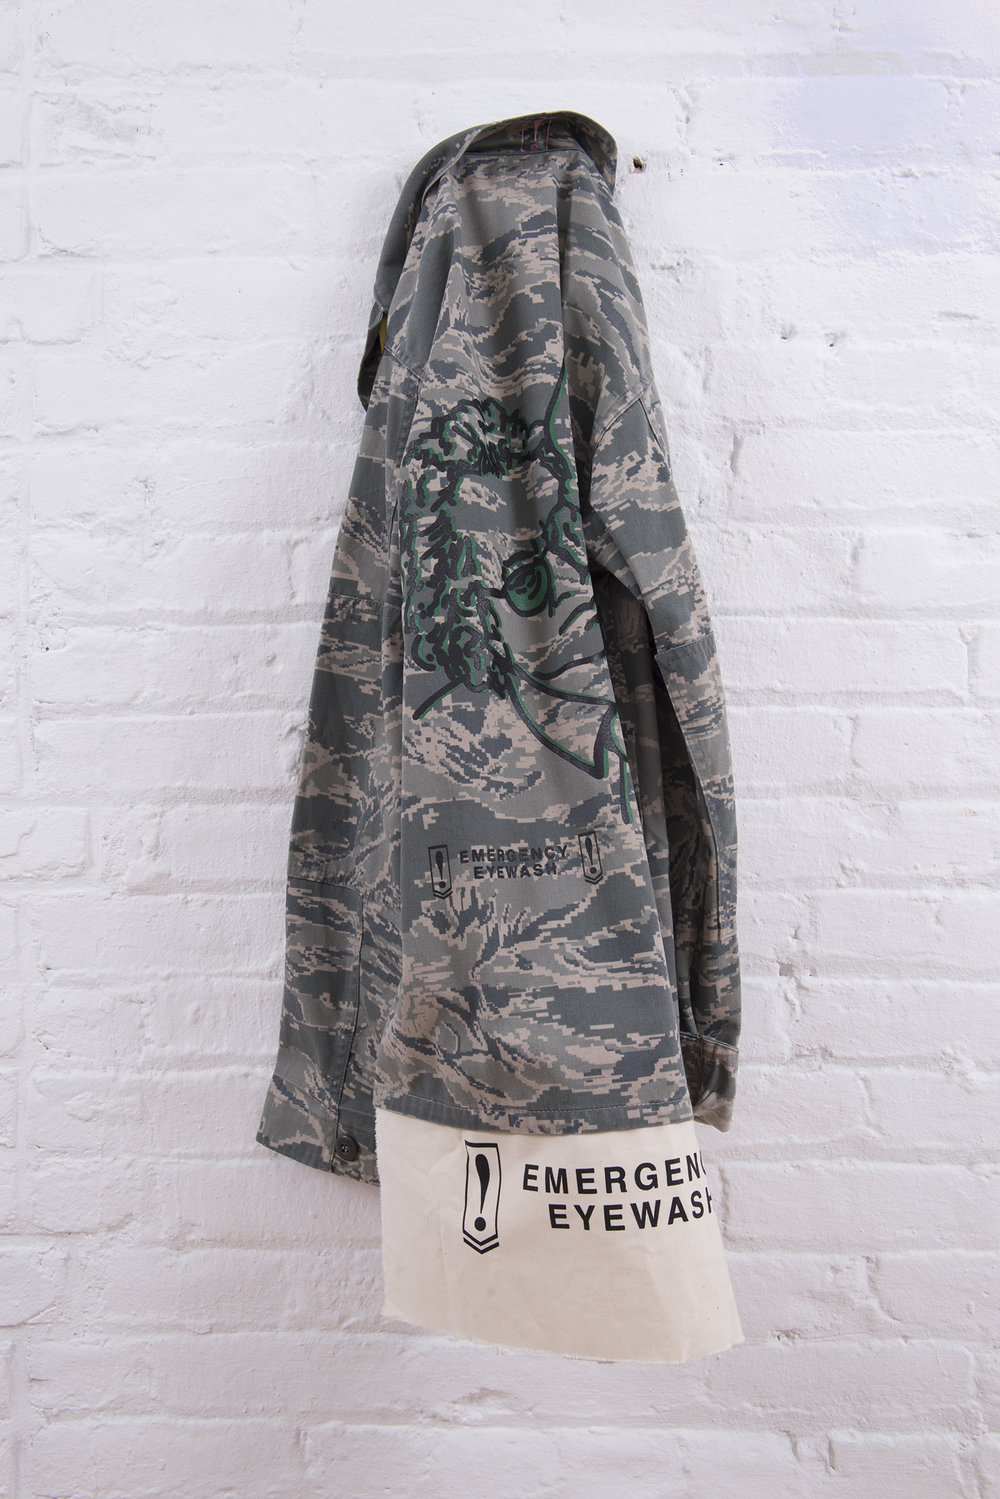 Ahem. Carol Szymanski & Xiaofu Wang. 2018. Vintage military camouflage jacket with Emergency Eyewash patches and silkscreen images